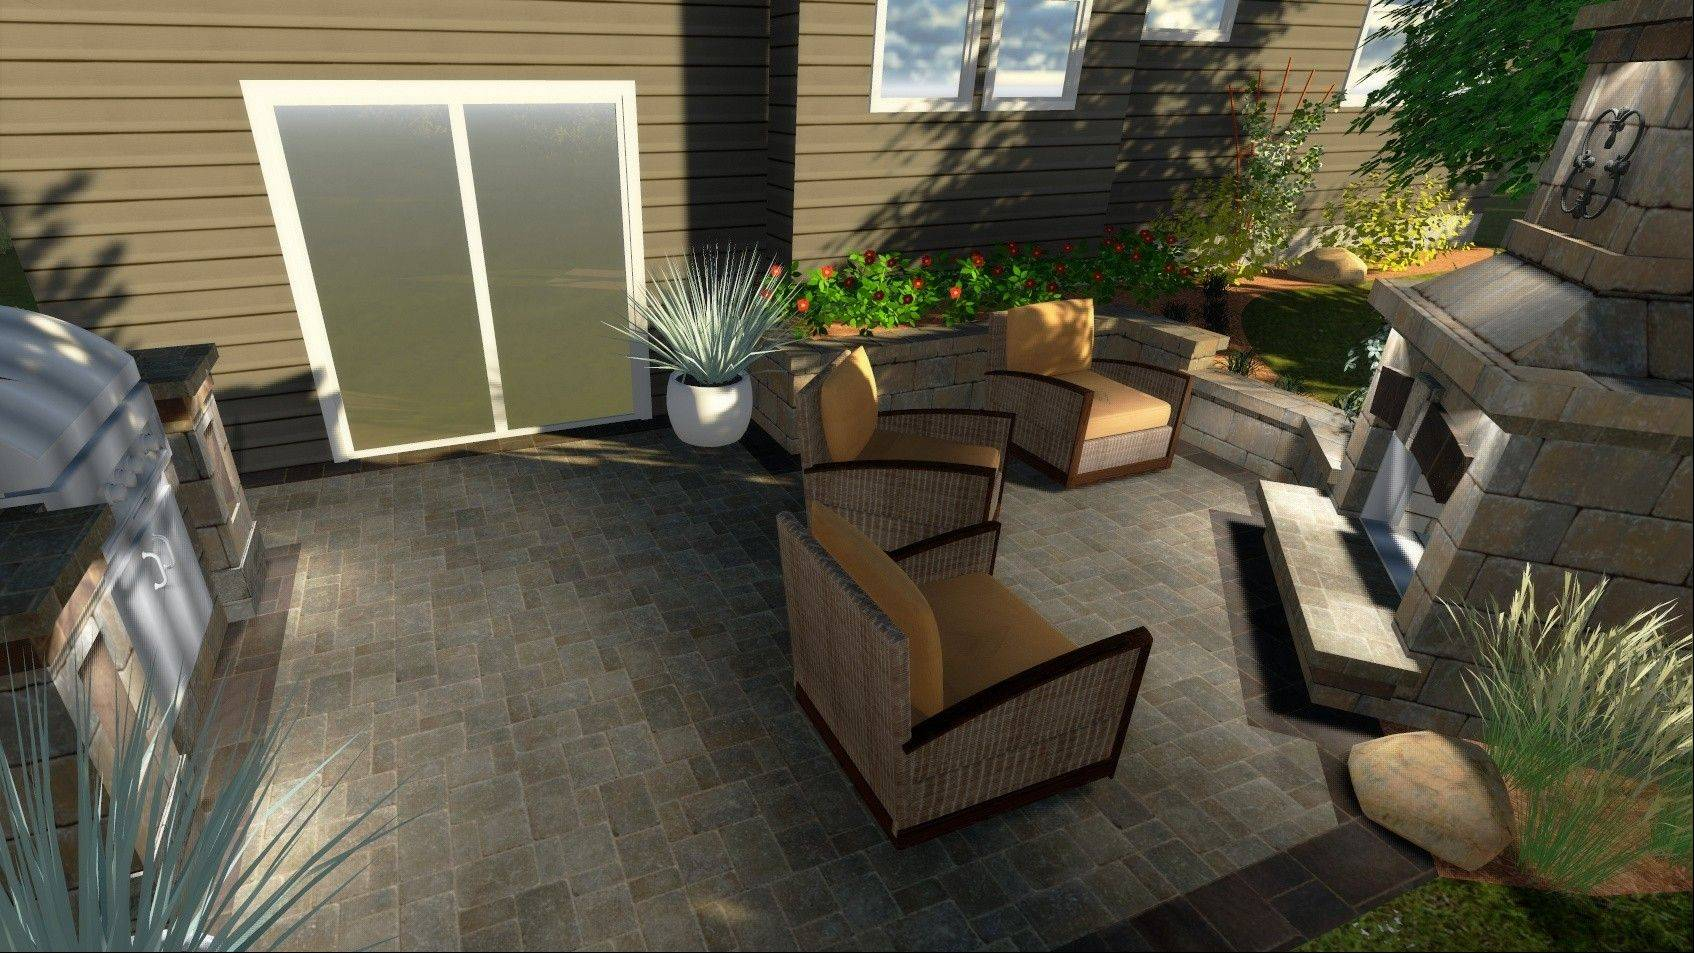 Pavers and seatwalls helped to created an outdoor room complete with fire pit and a grill island.